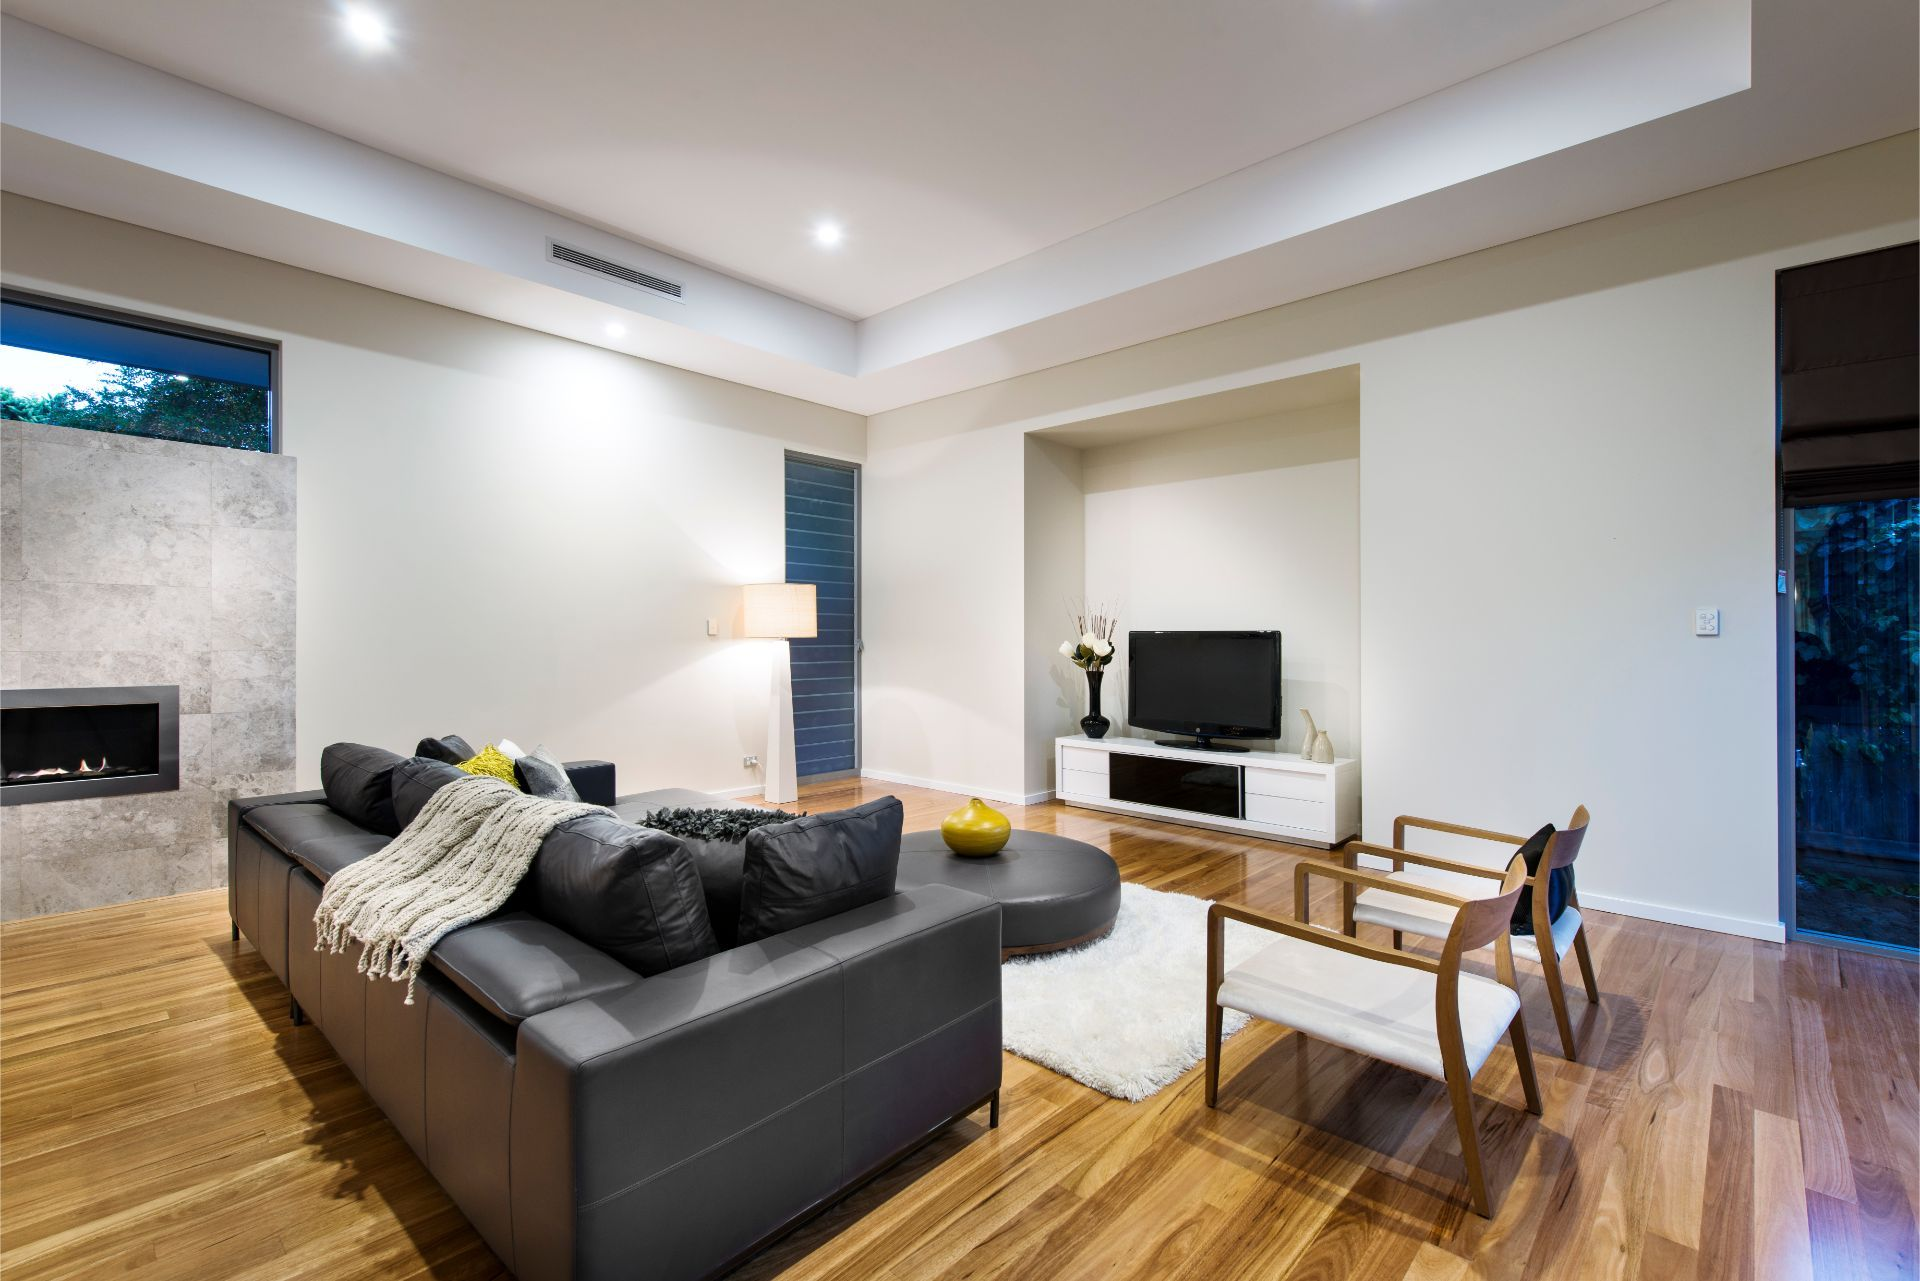 The george_cambuld-sophisticated homes-perth.jpg